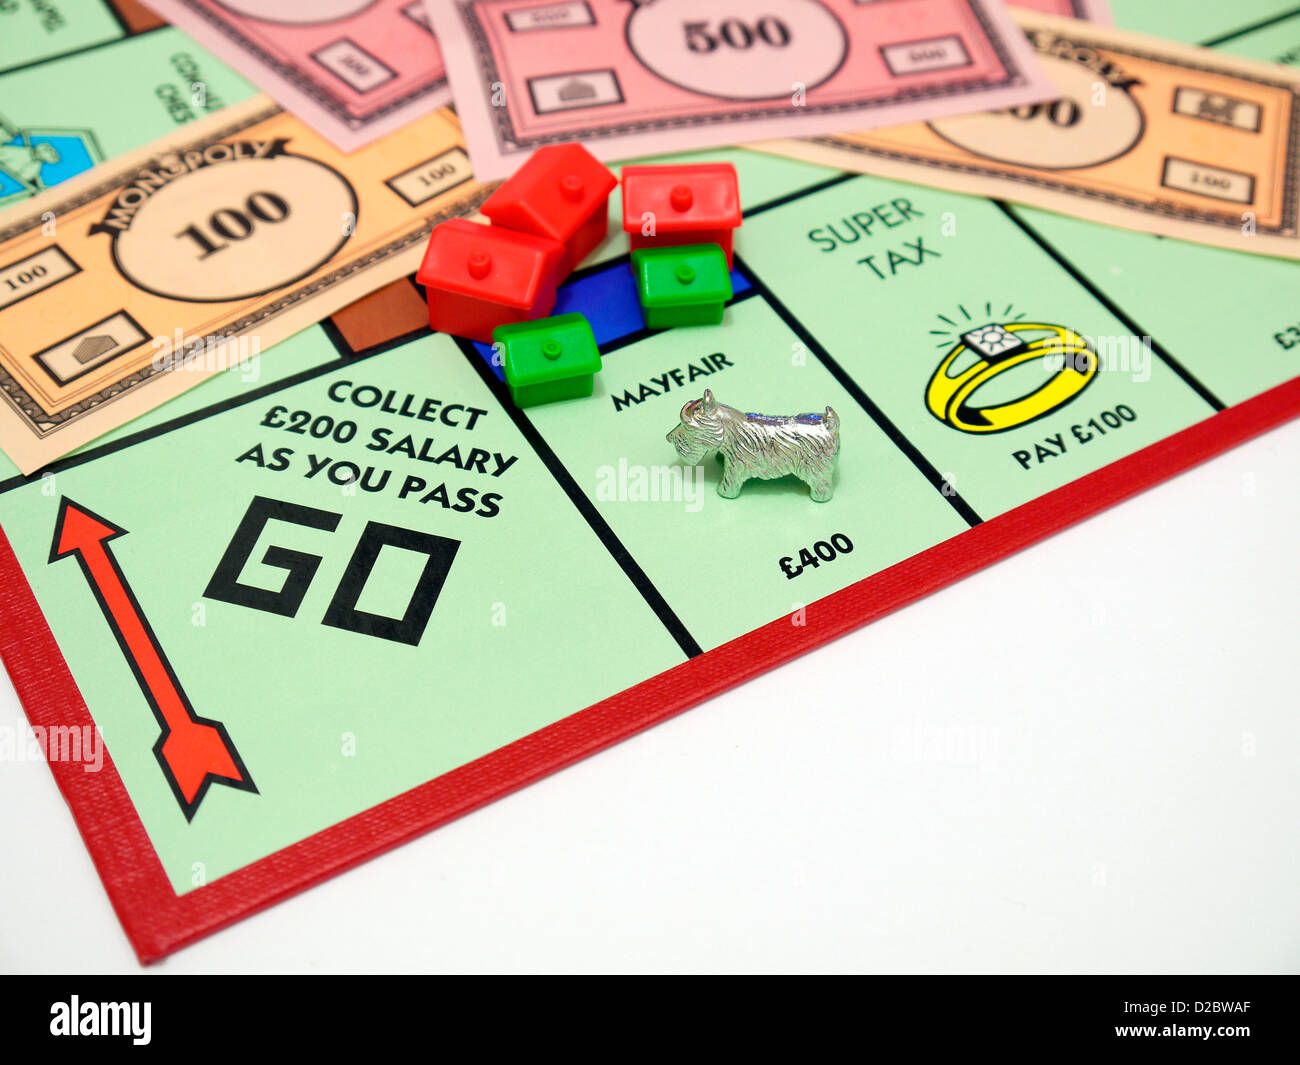 A Monopoly Token landing on Mayfair - representing someone unable to pay bills - Stock Image